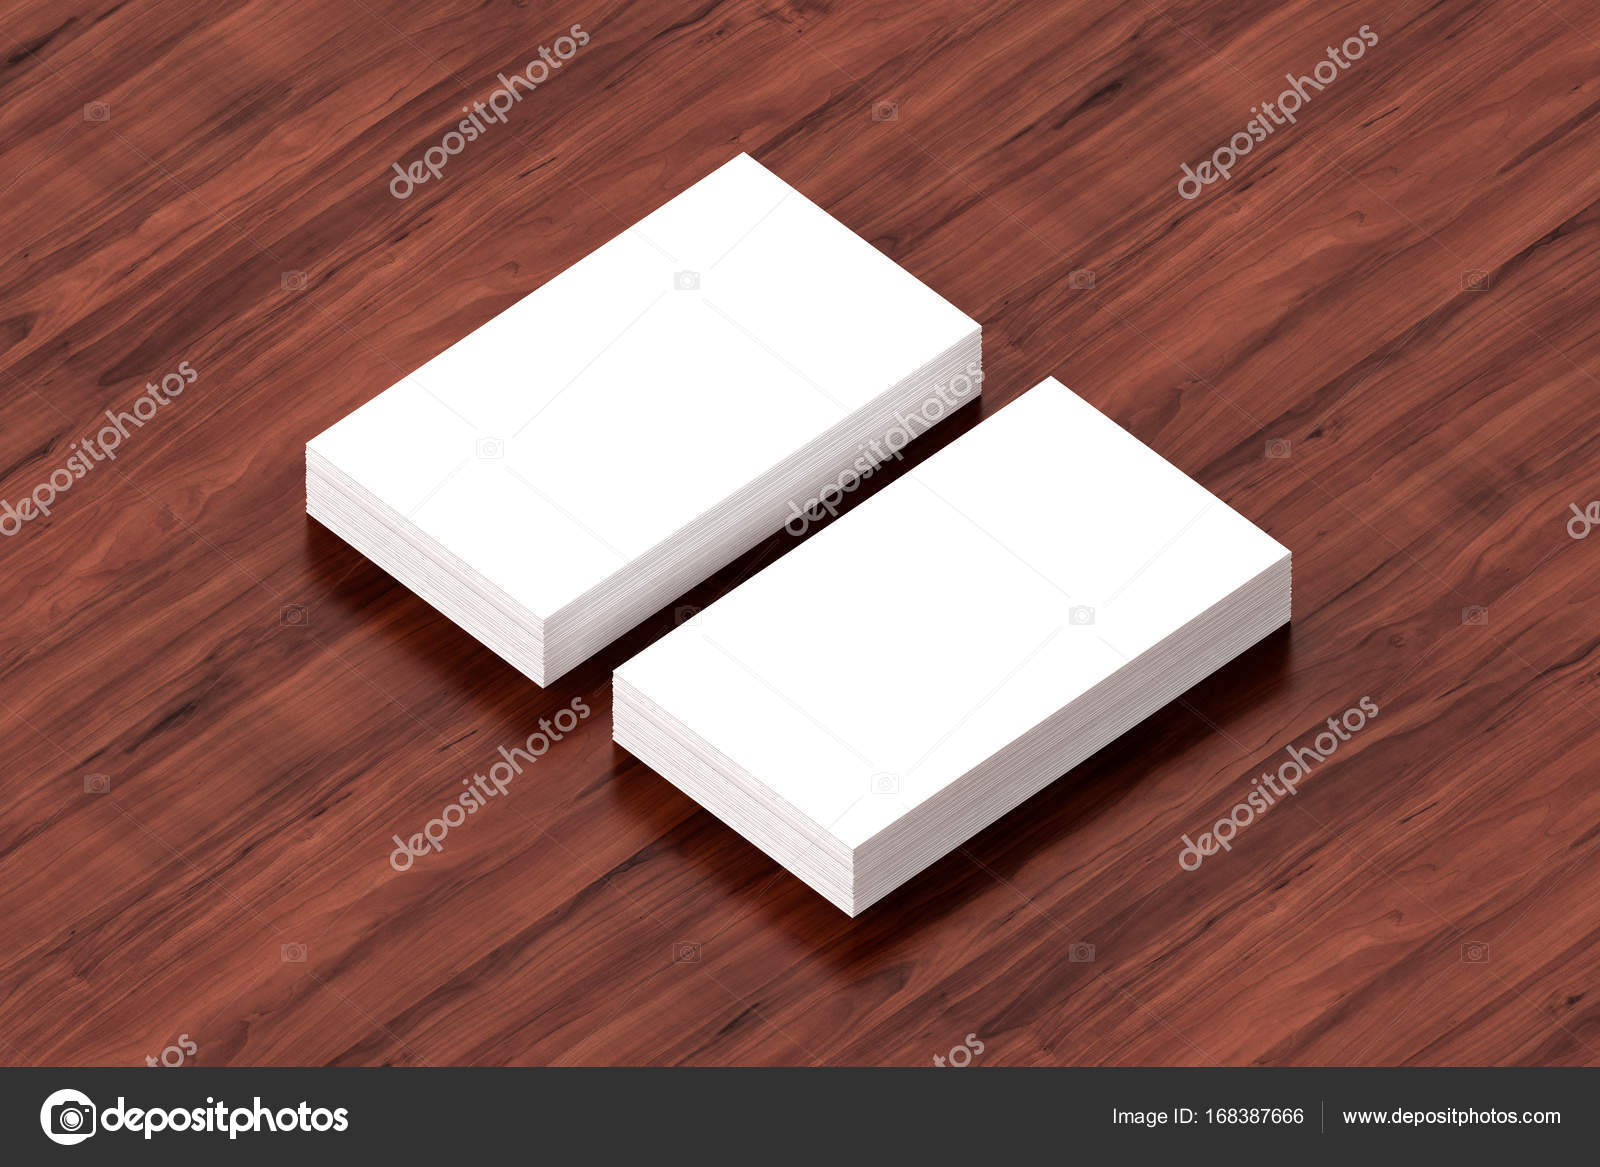 Business cards blank mockup template 3d illustration stock business cards blank mockup template 3d illustration photo by daliborzivotic cheaphphosting Gallery